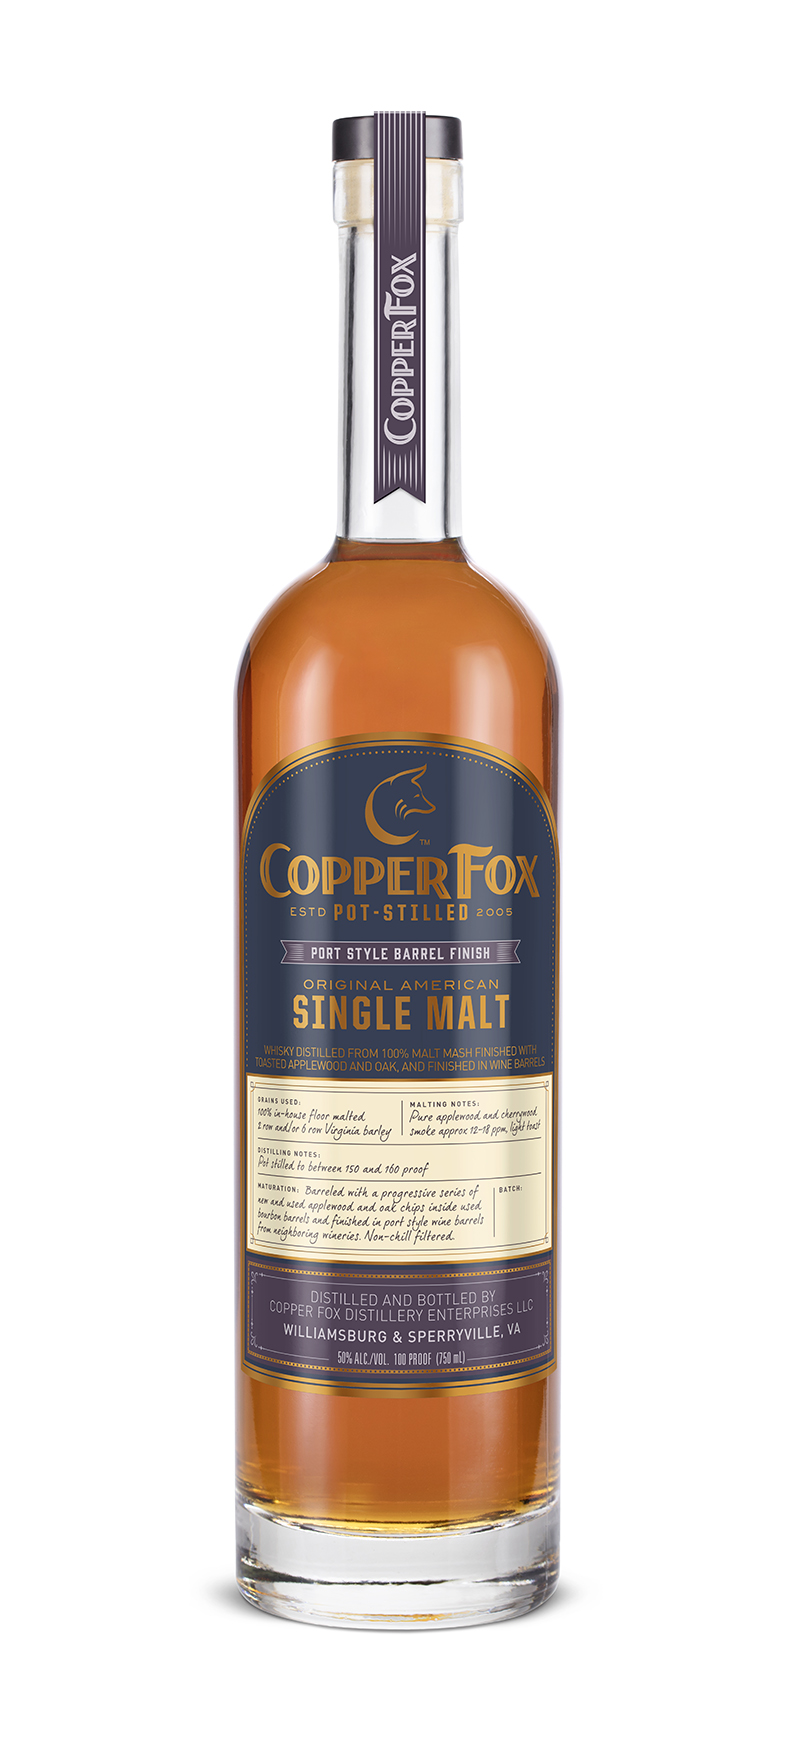 COPPER FOX PORT STYLE BARREL FINISH SINGLE MALT - Our signature single malt, aged with a progressive series of hand toasted, select seasoned, new and used applewood and oak chips inside used bourbon barrels, transferred to a second used bourbon and then finished in used port style wine barrels from neighboring Virginia wineries. This process results in a deep rich flavor and subtle sweetness, attributed to the residual wine in the wood.TASTING NOTESColor: A dark auburn-huedNose: Beautifully perfumed nose of raisin, brandied cherry, cinnamon sugar, and aged leather.Palate: Rich and honeyed with notes of milk chocolate covered cherries, ginger root, toasted coconut, and cigar box.Finish: A savory, biscuit-like quality develops on the generous finish, leaving an impeccably balanced dessert lingering on the tongue.Non-chill filtered. 50% ABV/100 ProofA single malt whisky to study over and savor.‹ PreviousBack to GalleryNext ›